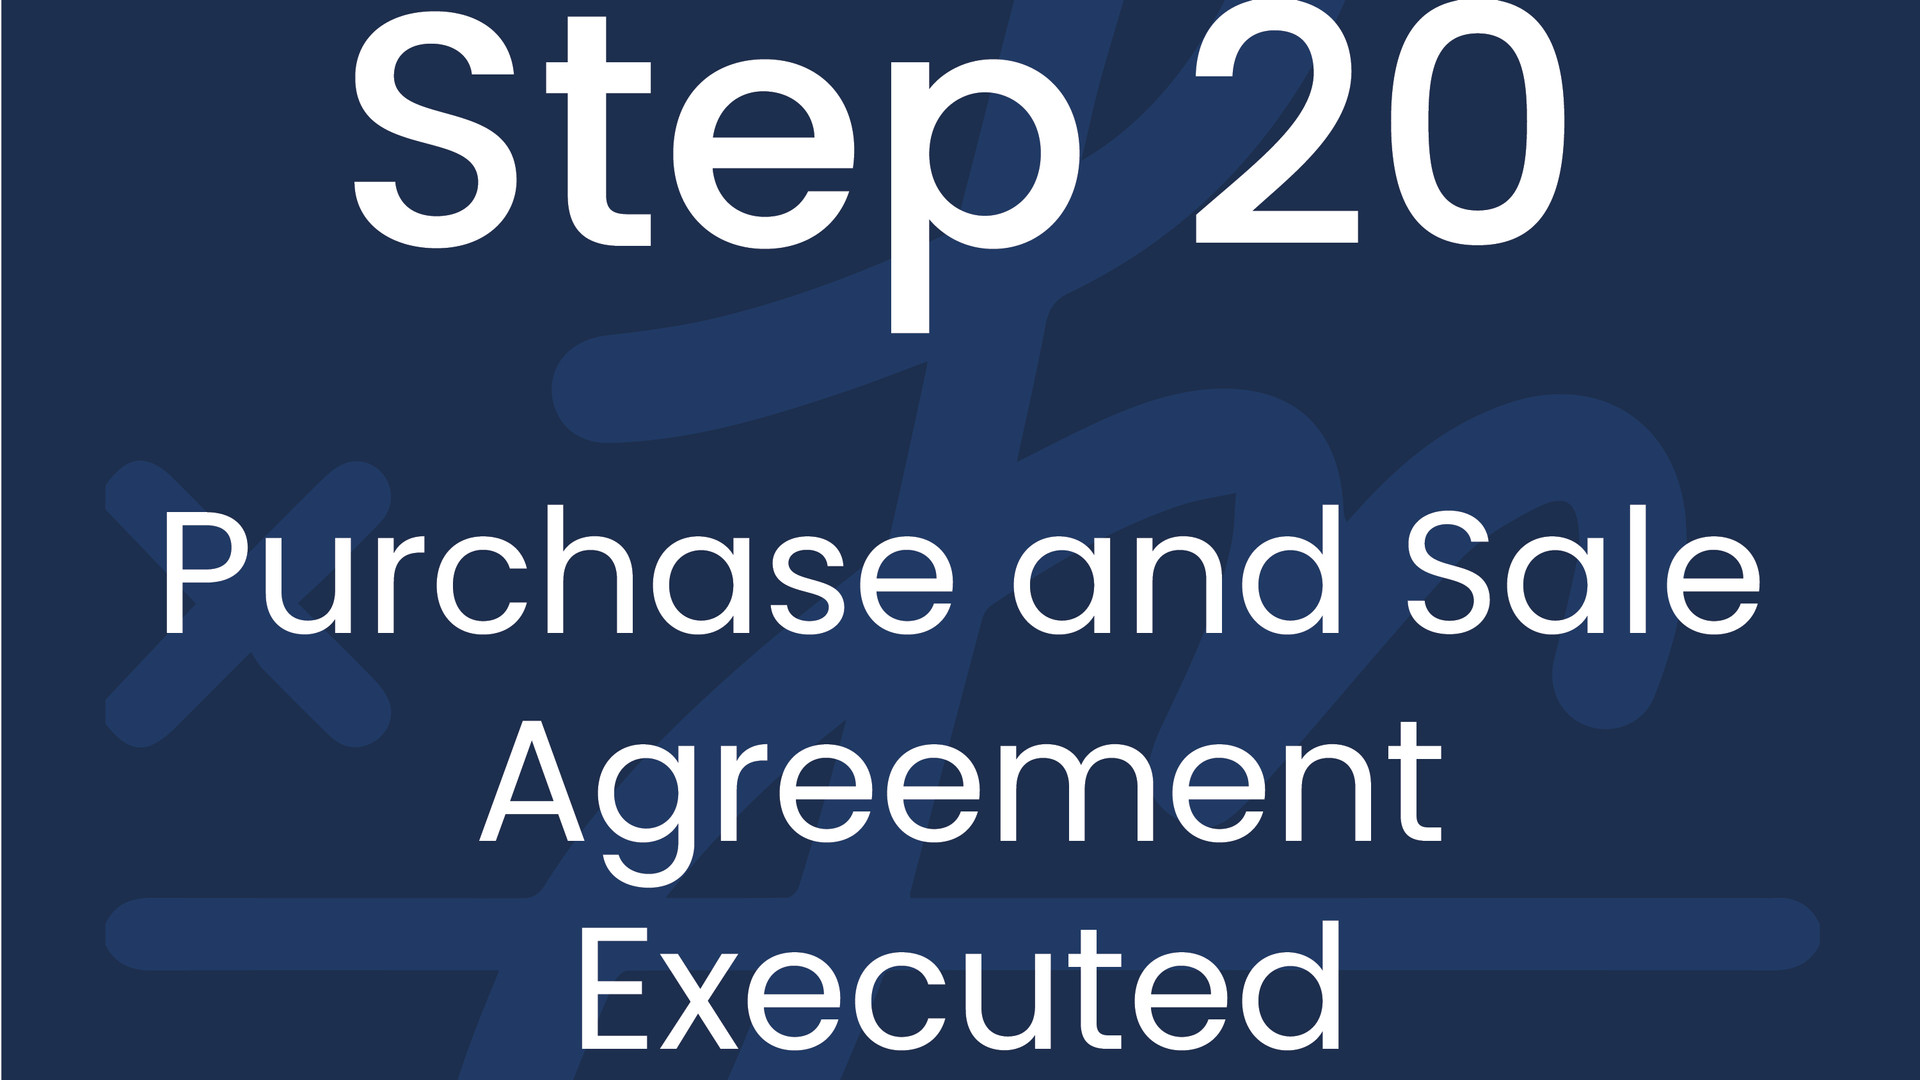 Step 20: Purchase and Sale Agreement Executed